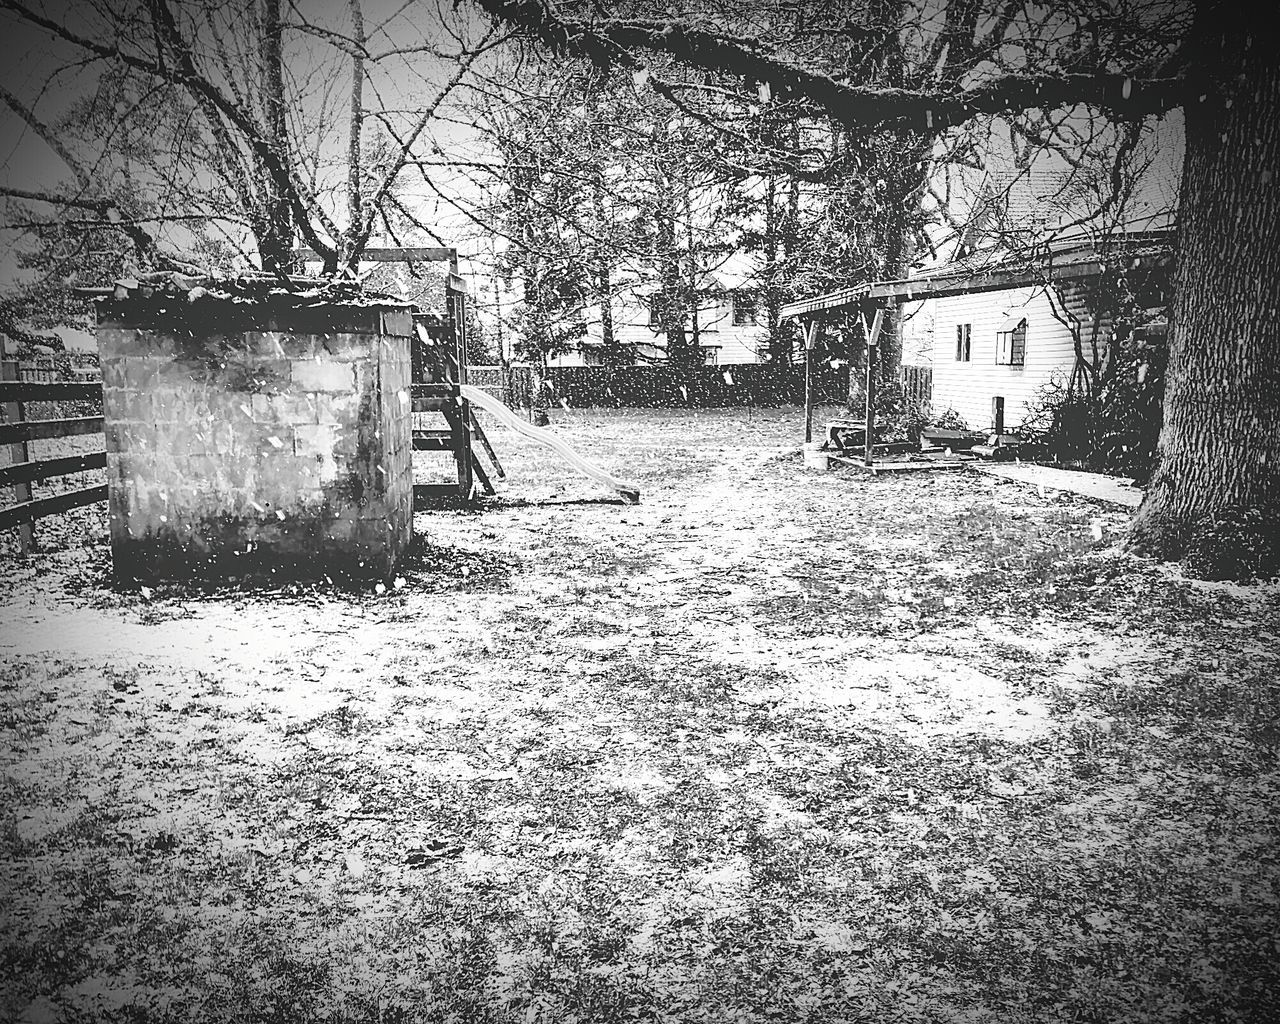 Snowing Snow ❄ Outdoors White Day Slide Black & White Backyard Tree peaceful